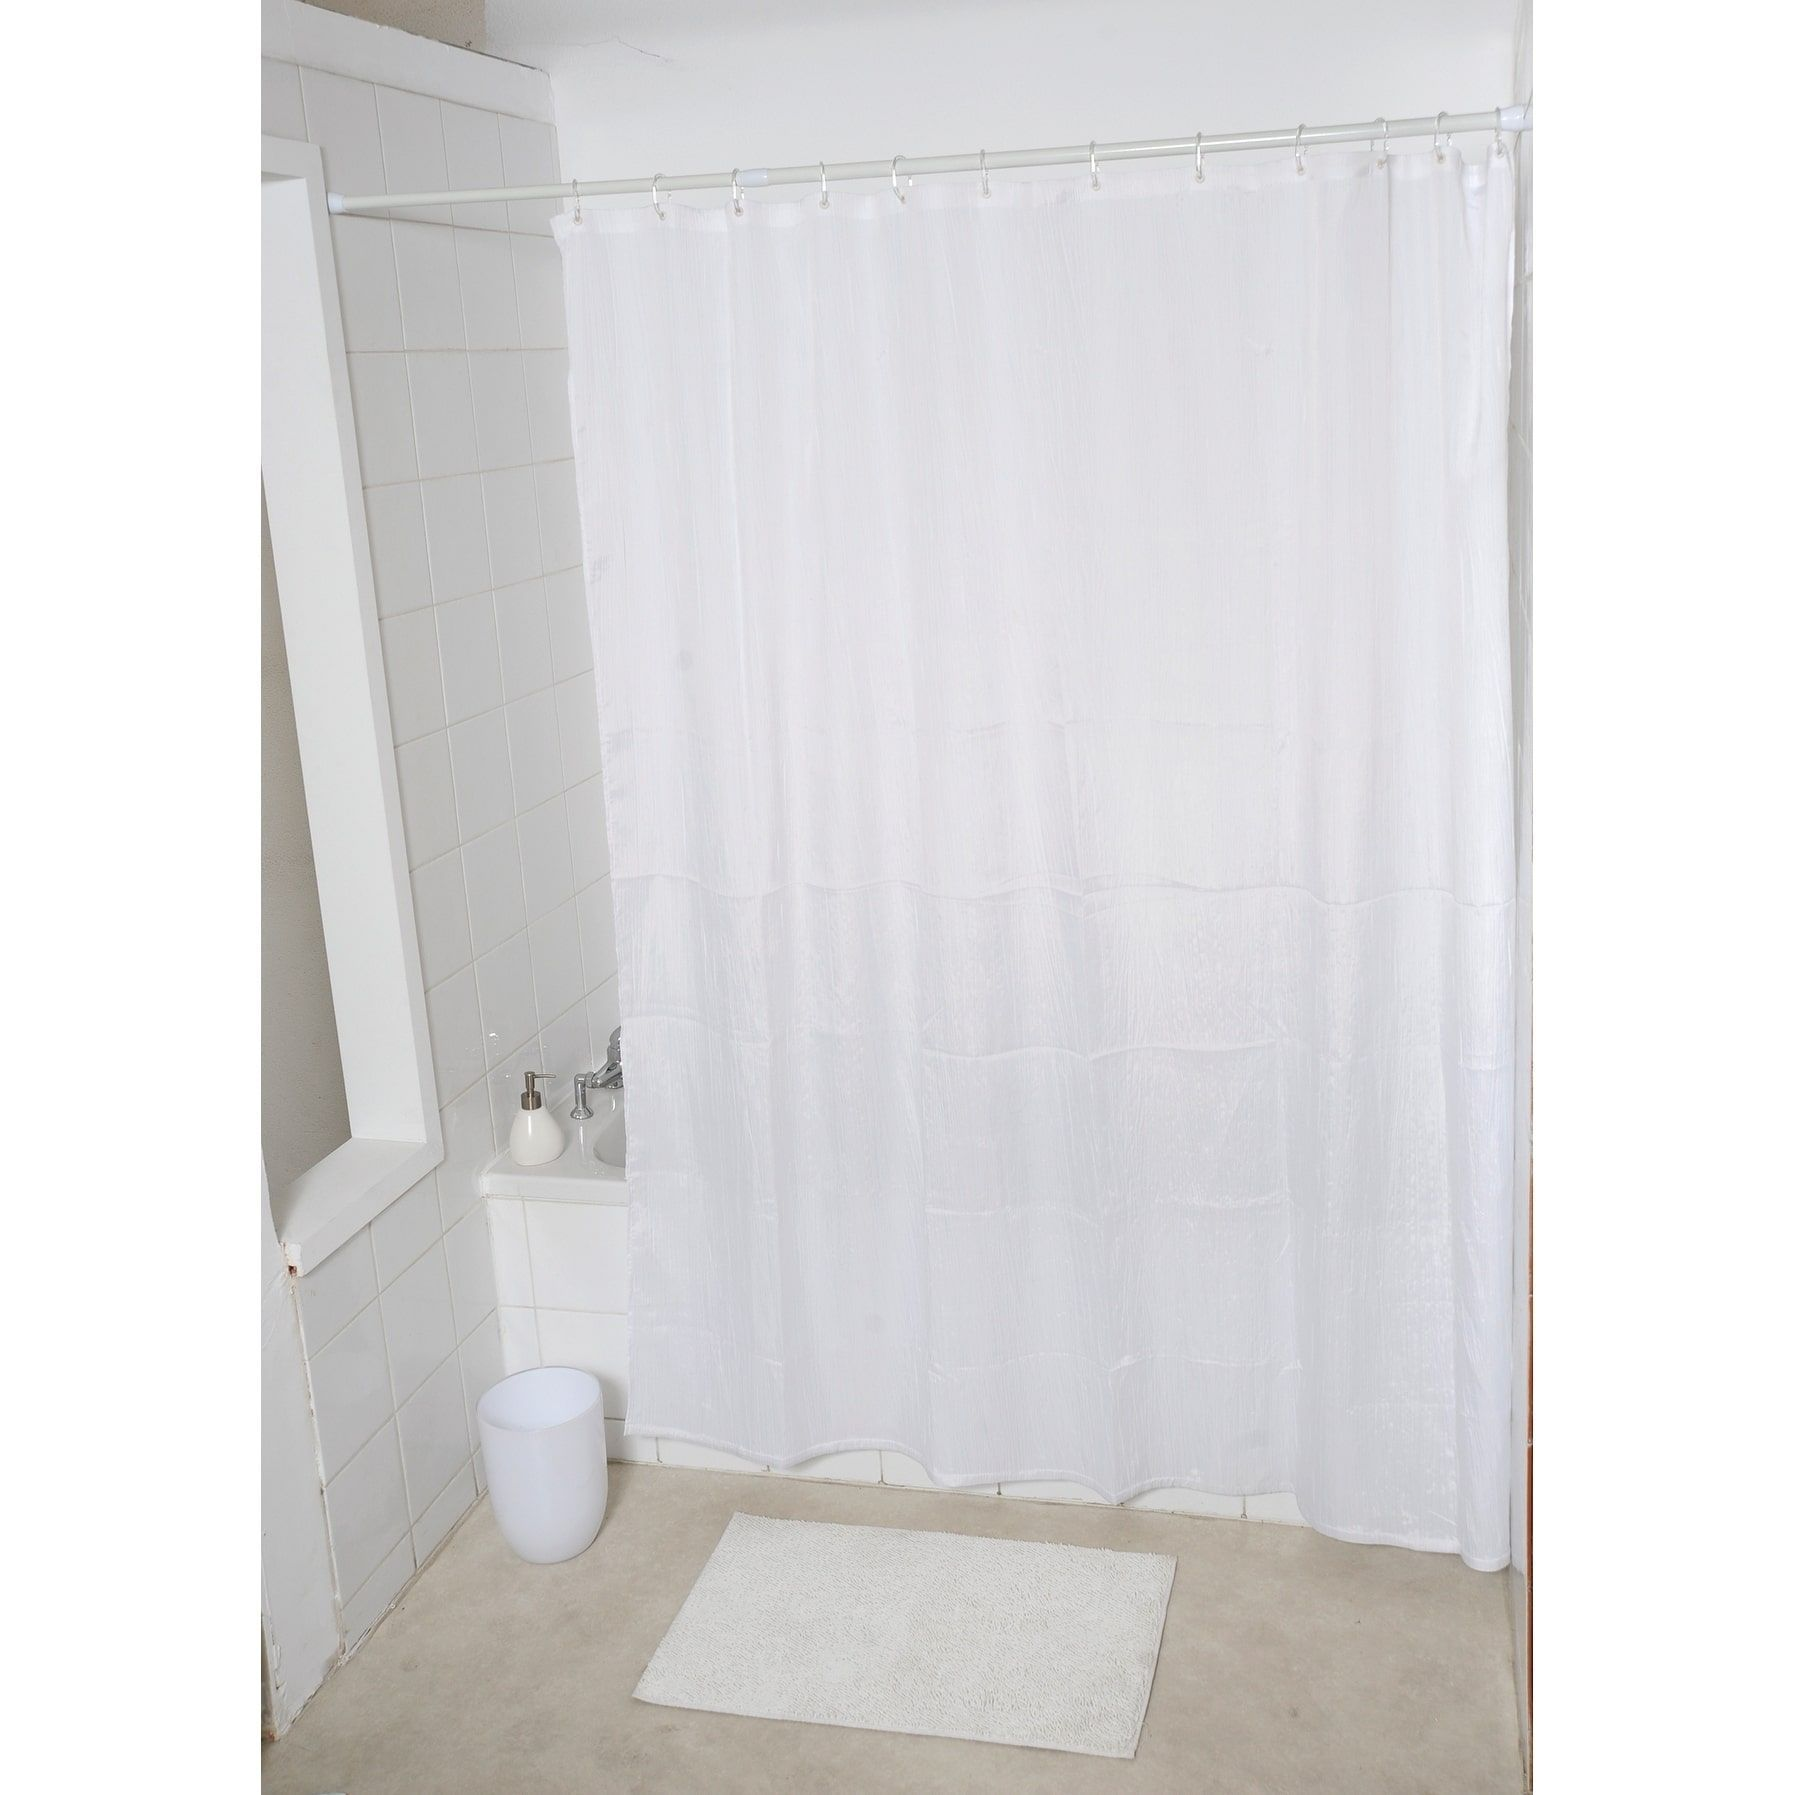 Evideco Fabric Shower Curtain Wrinkled